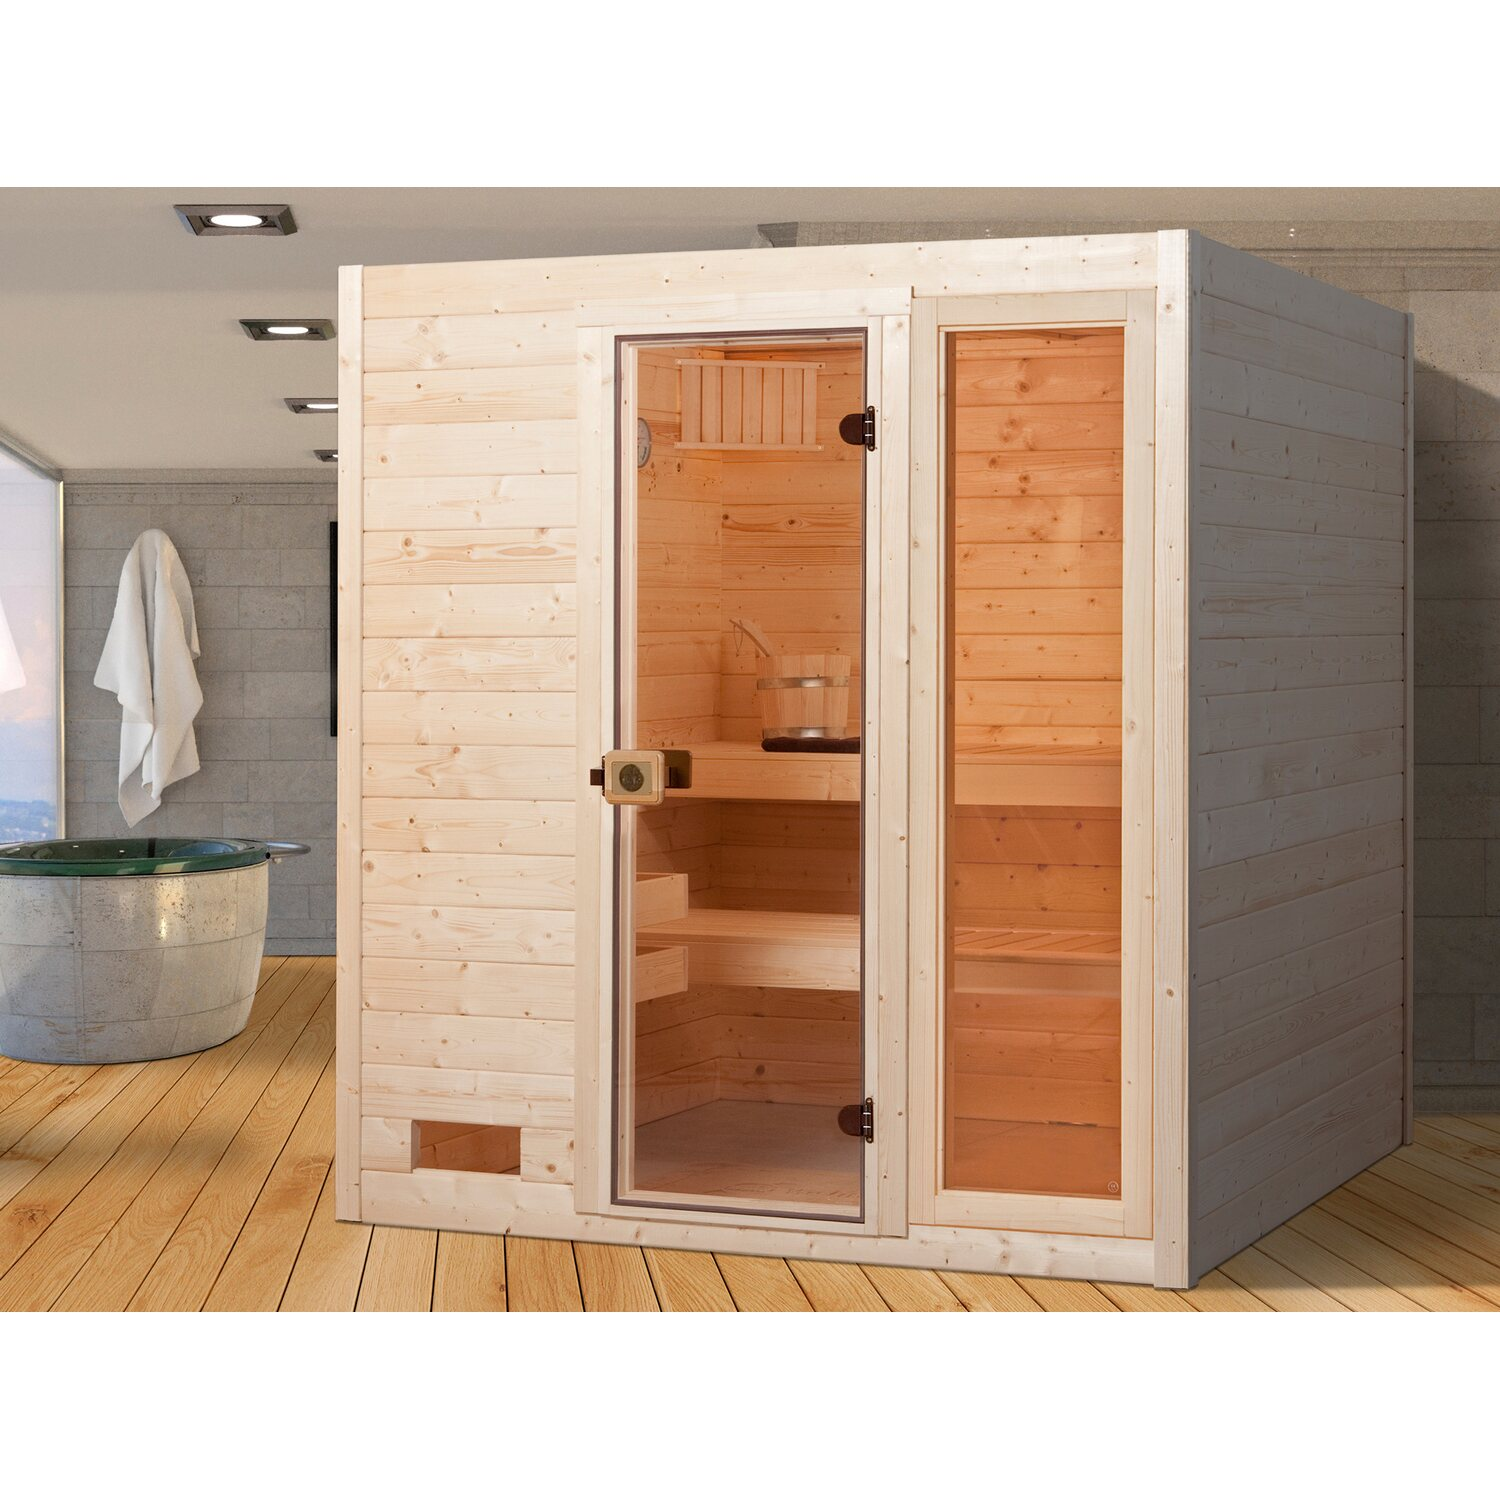 sauna mit holzofen kaufen cheap sauna im wohnwagen am see egalwosauna sauna with sauna mit. Black Bedroom Furniture Sets. Home Design Ideas